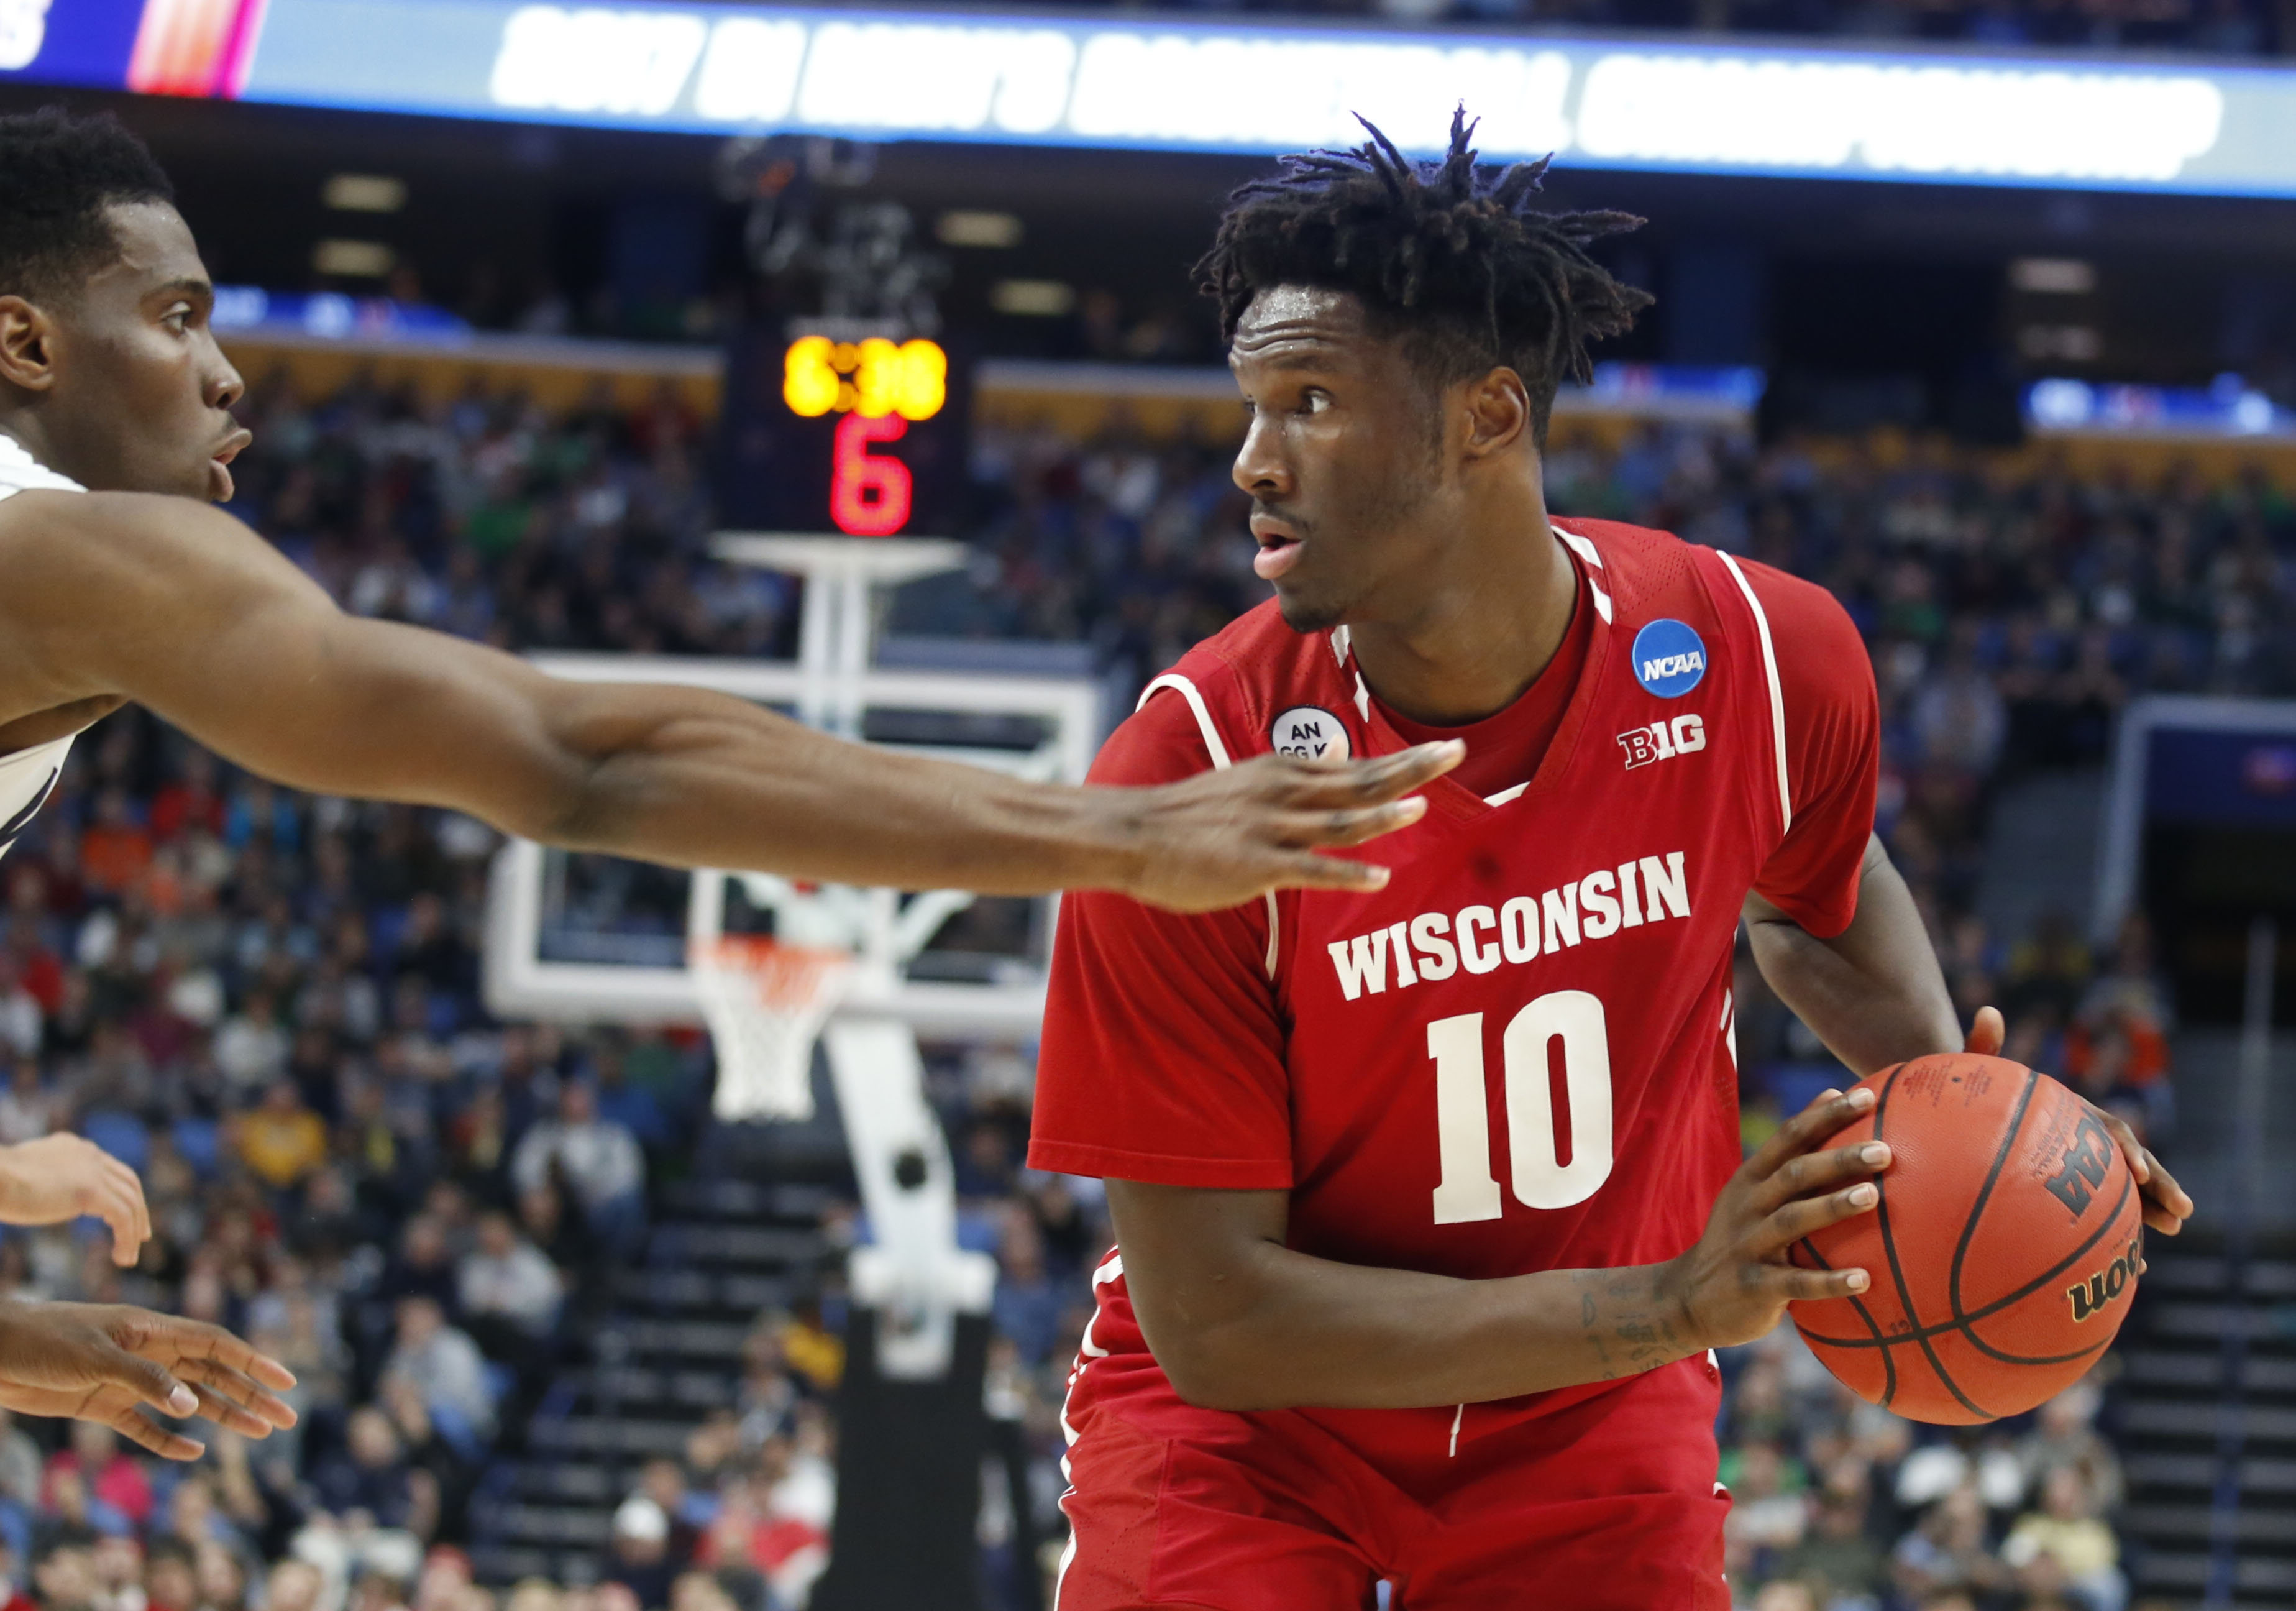 Wisconsin's Nigel Hayes looks to pass during the Badgers' second round victory over Villanova. (Robert Kirkham/Buffalo News)